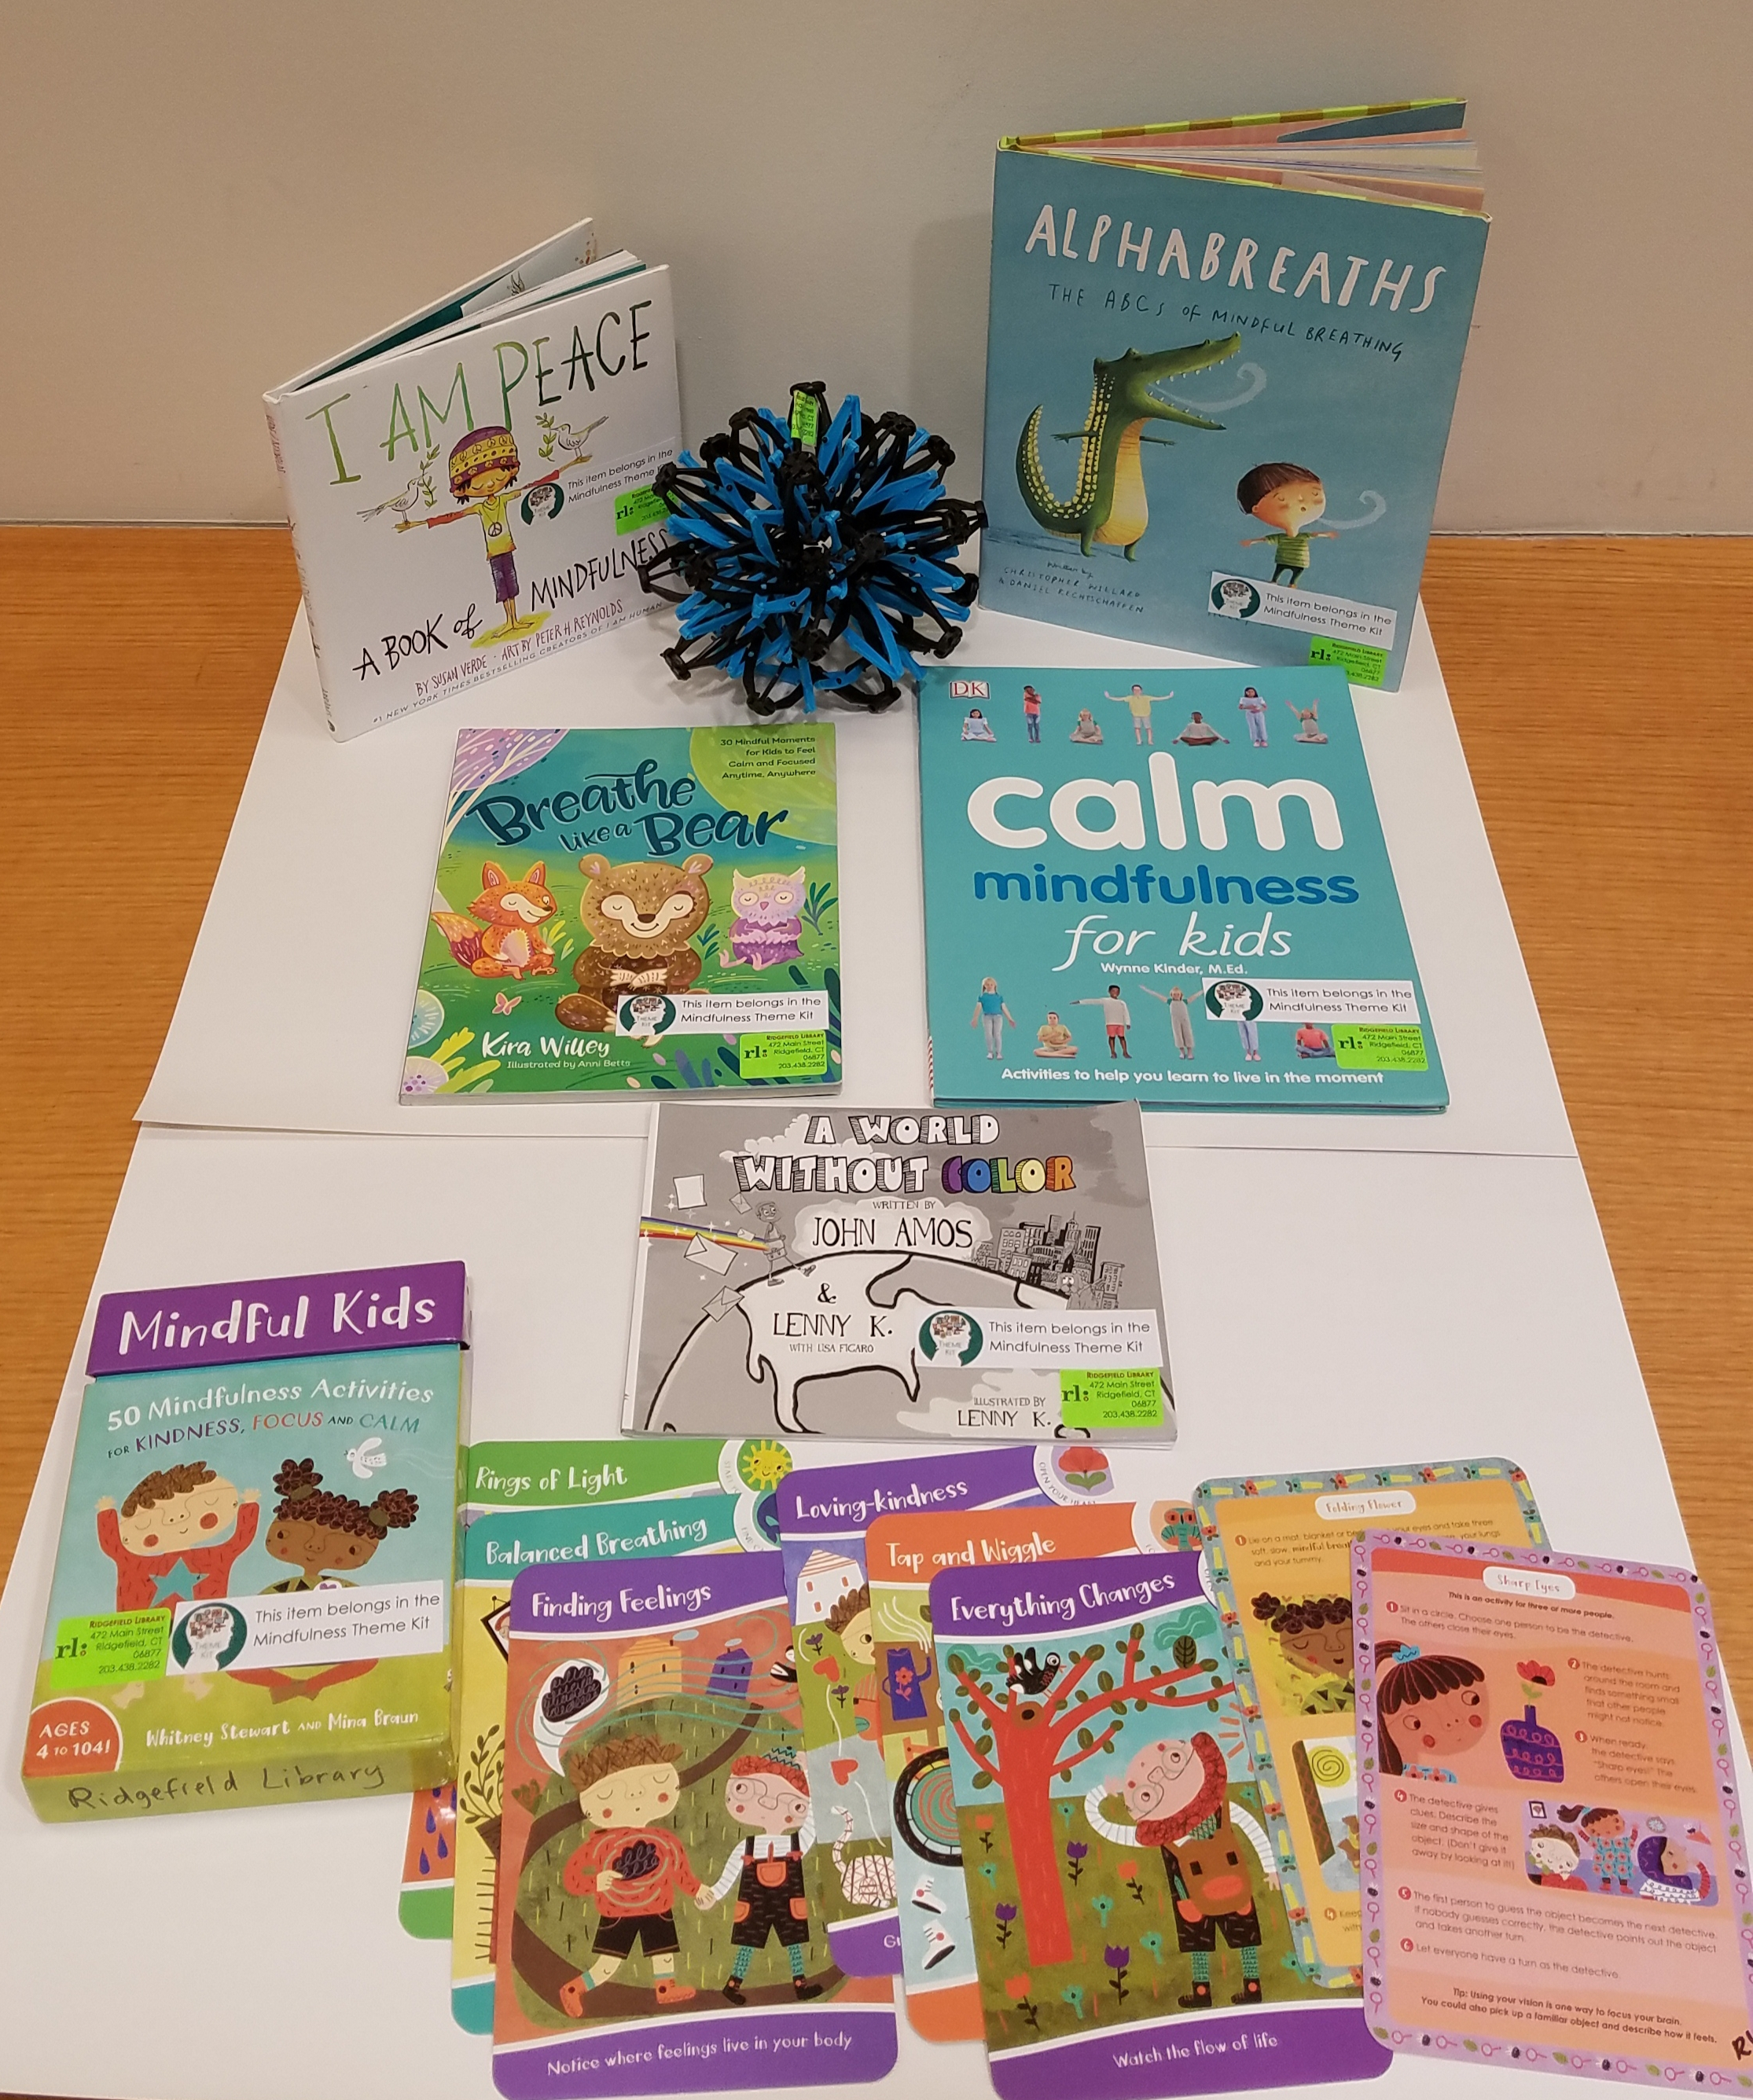 Books and activities for peaceful, thoughtful and empathetic reflection